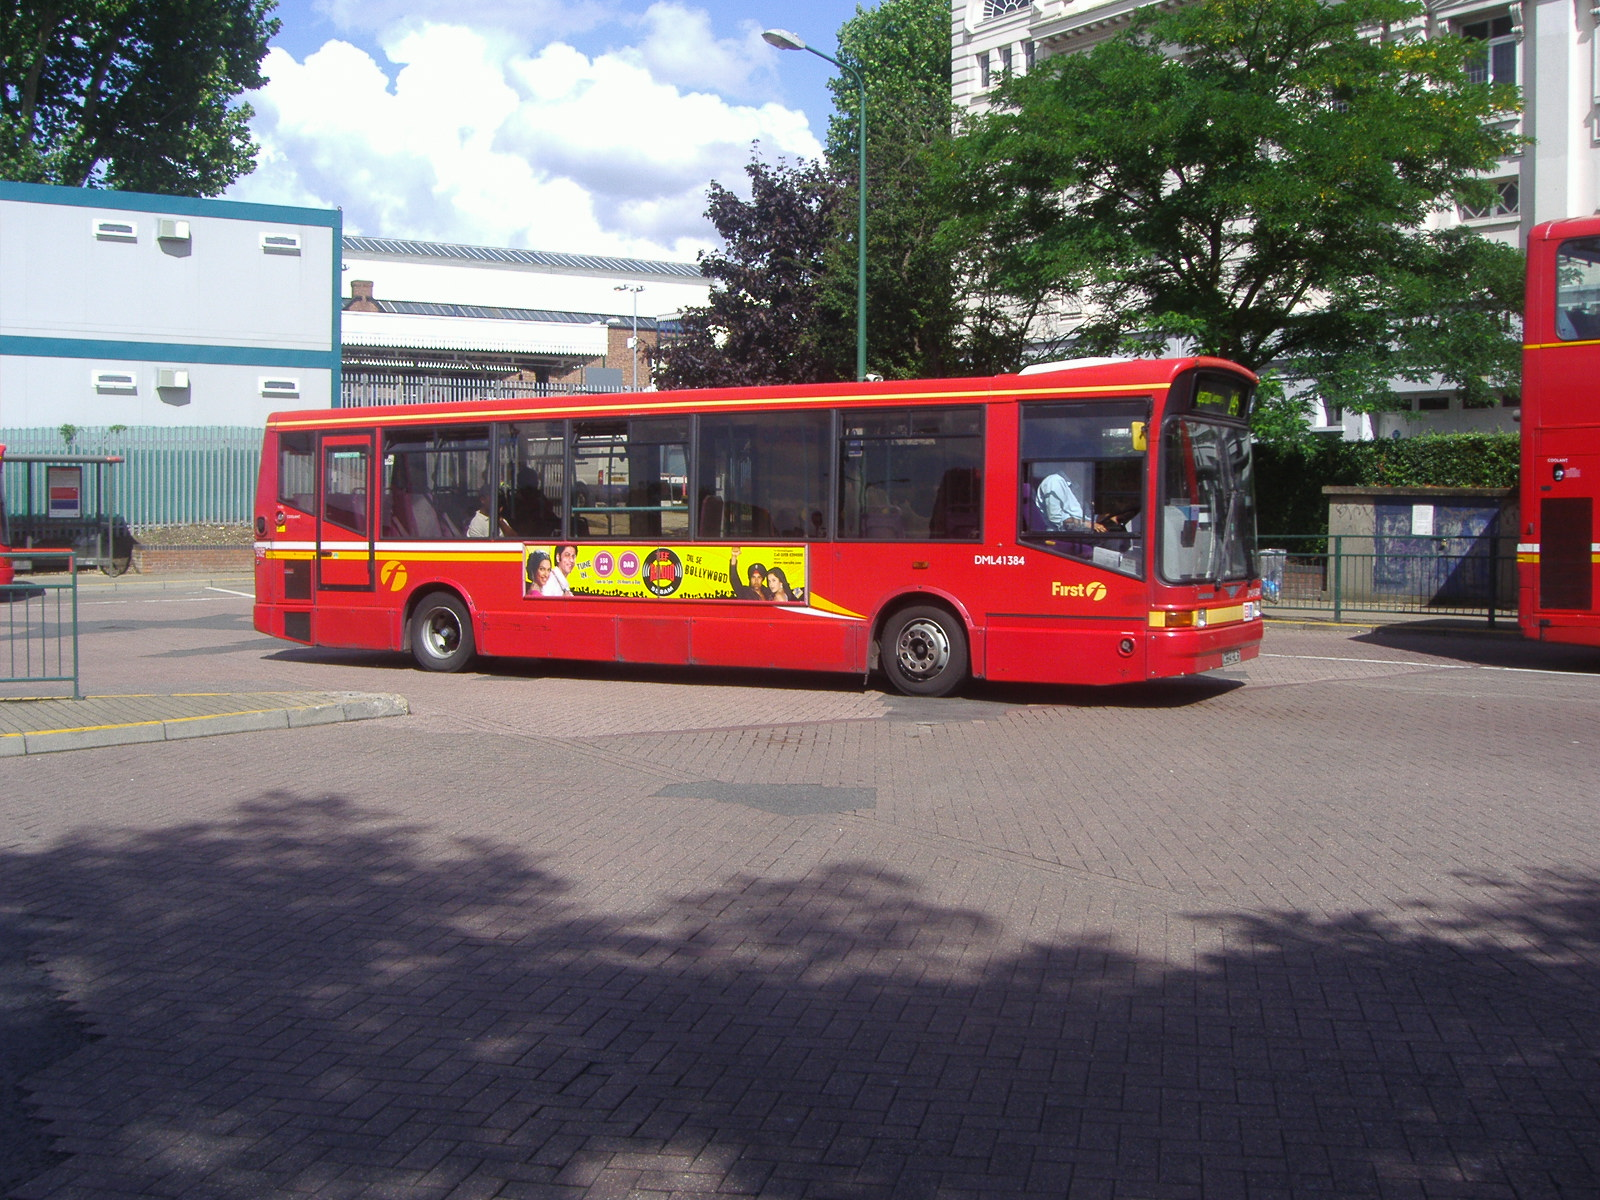 file:london buses route 245 golders green station - wikimedia